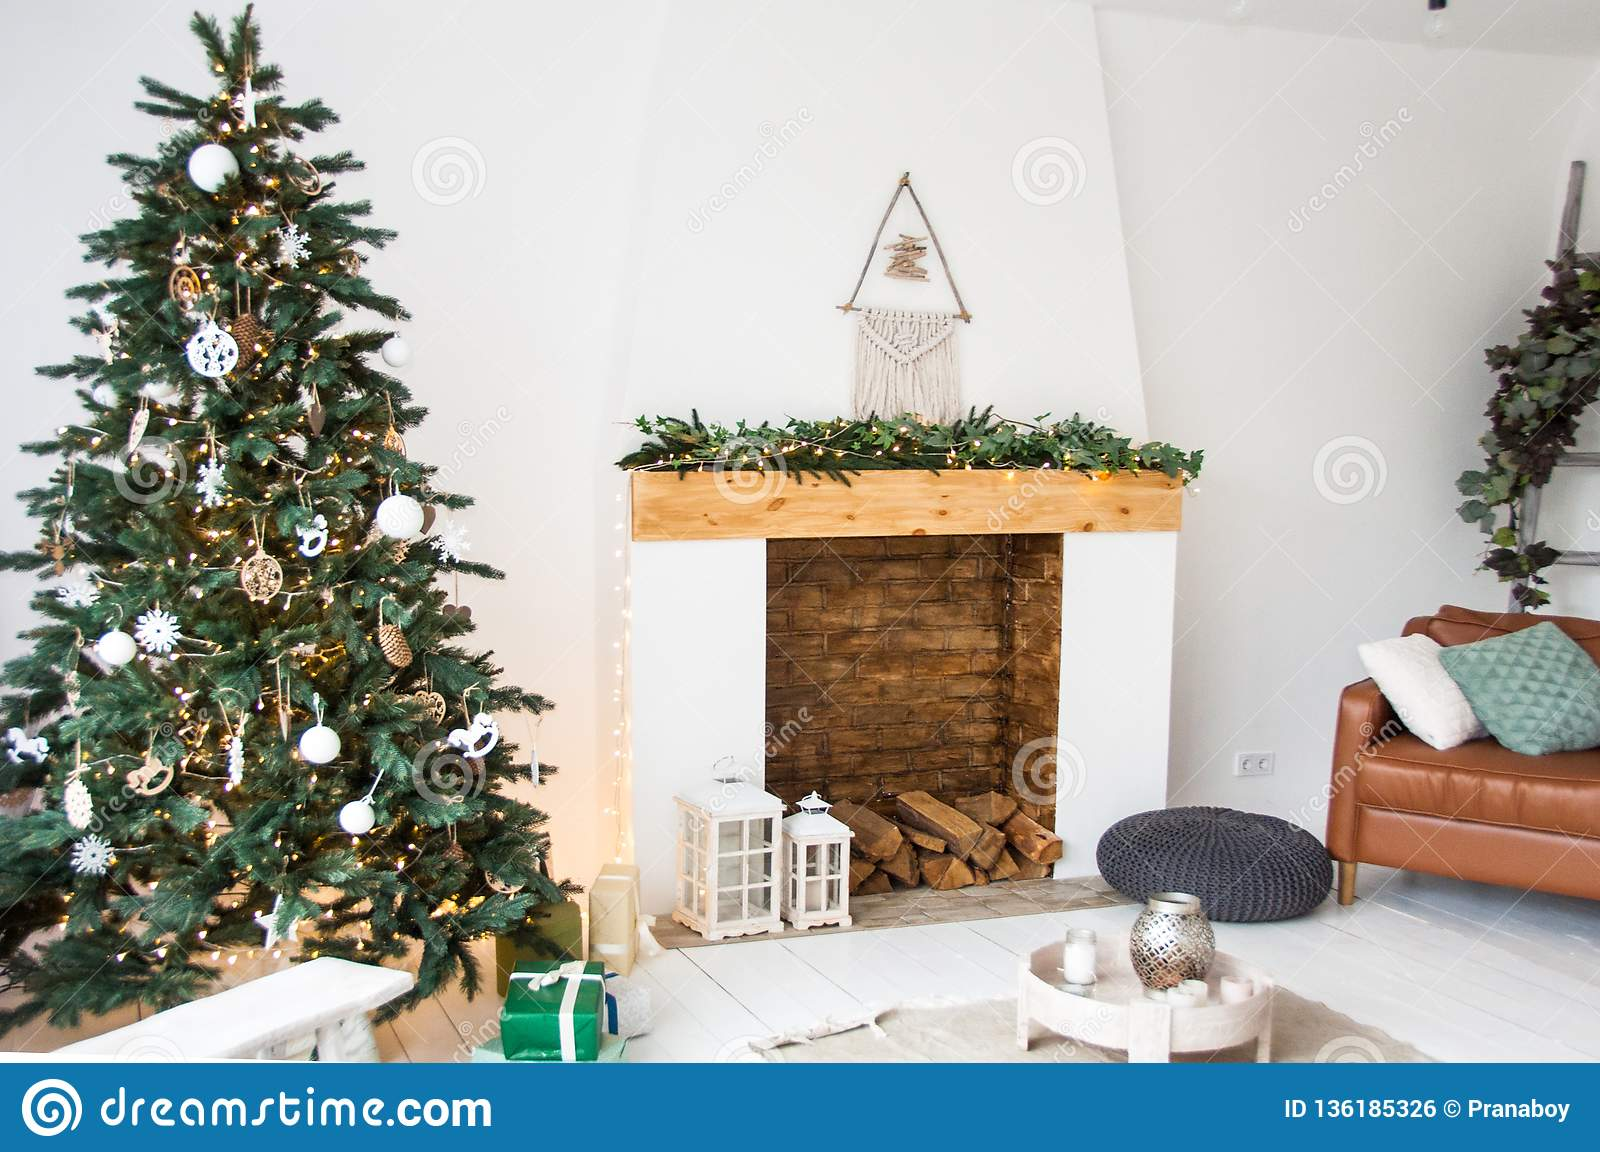 Christmas Decoration For White Living Room With Fireplace And Christmas Tree Interior Design Stock Photo Image Of Indoors 2020 136185326